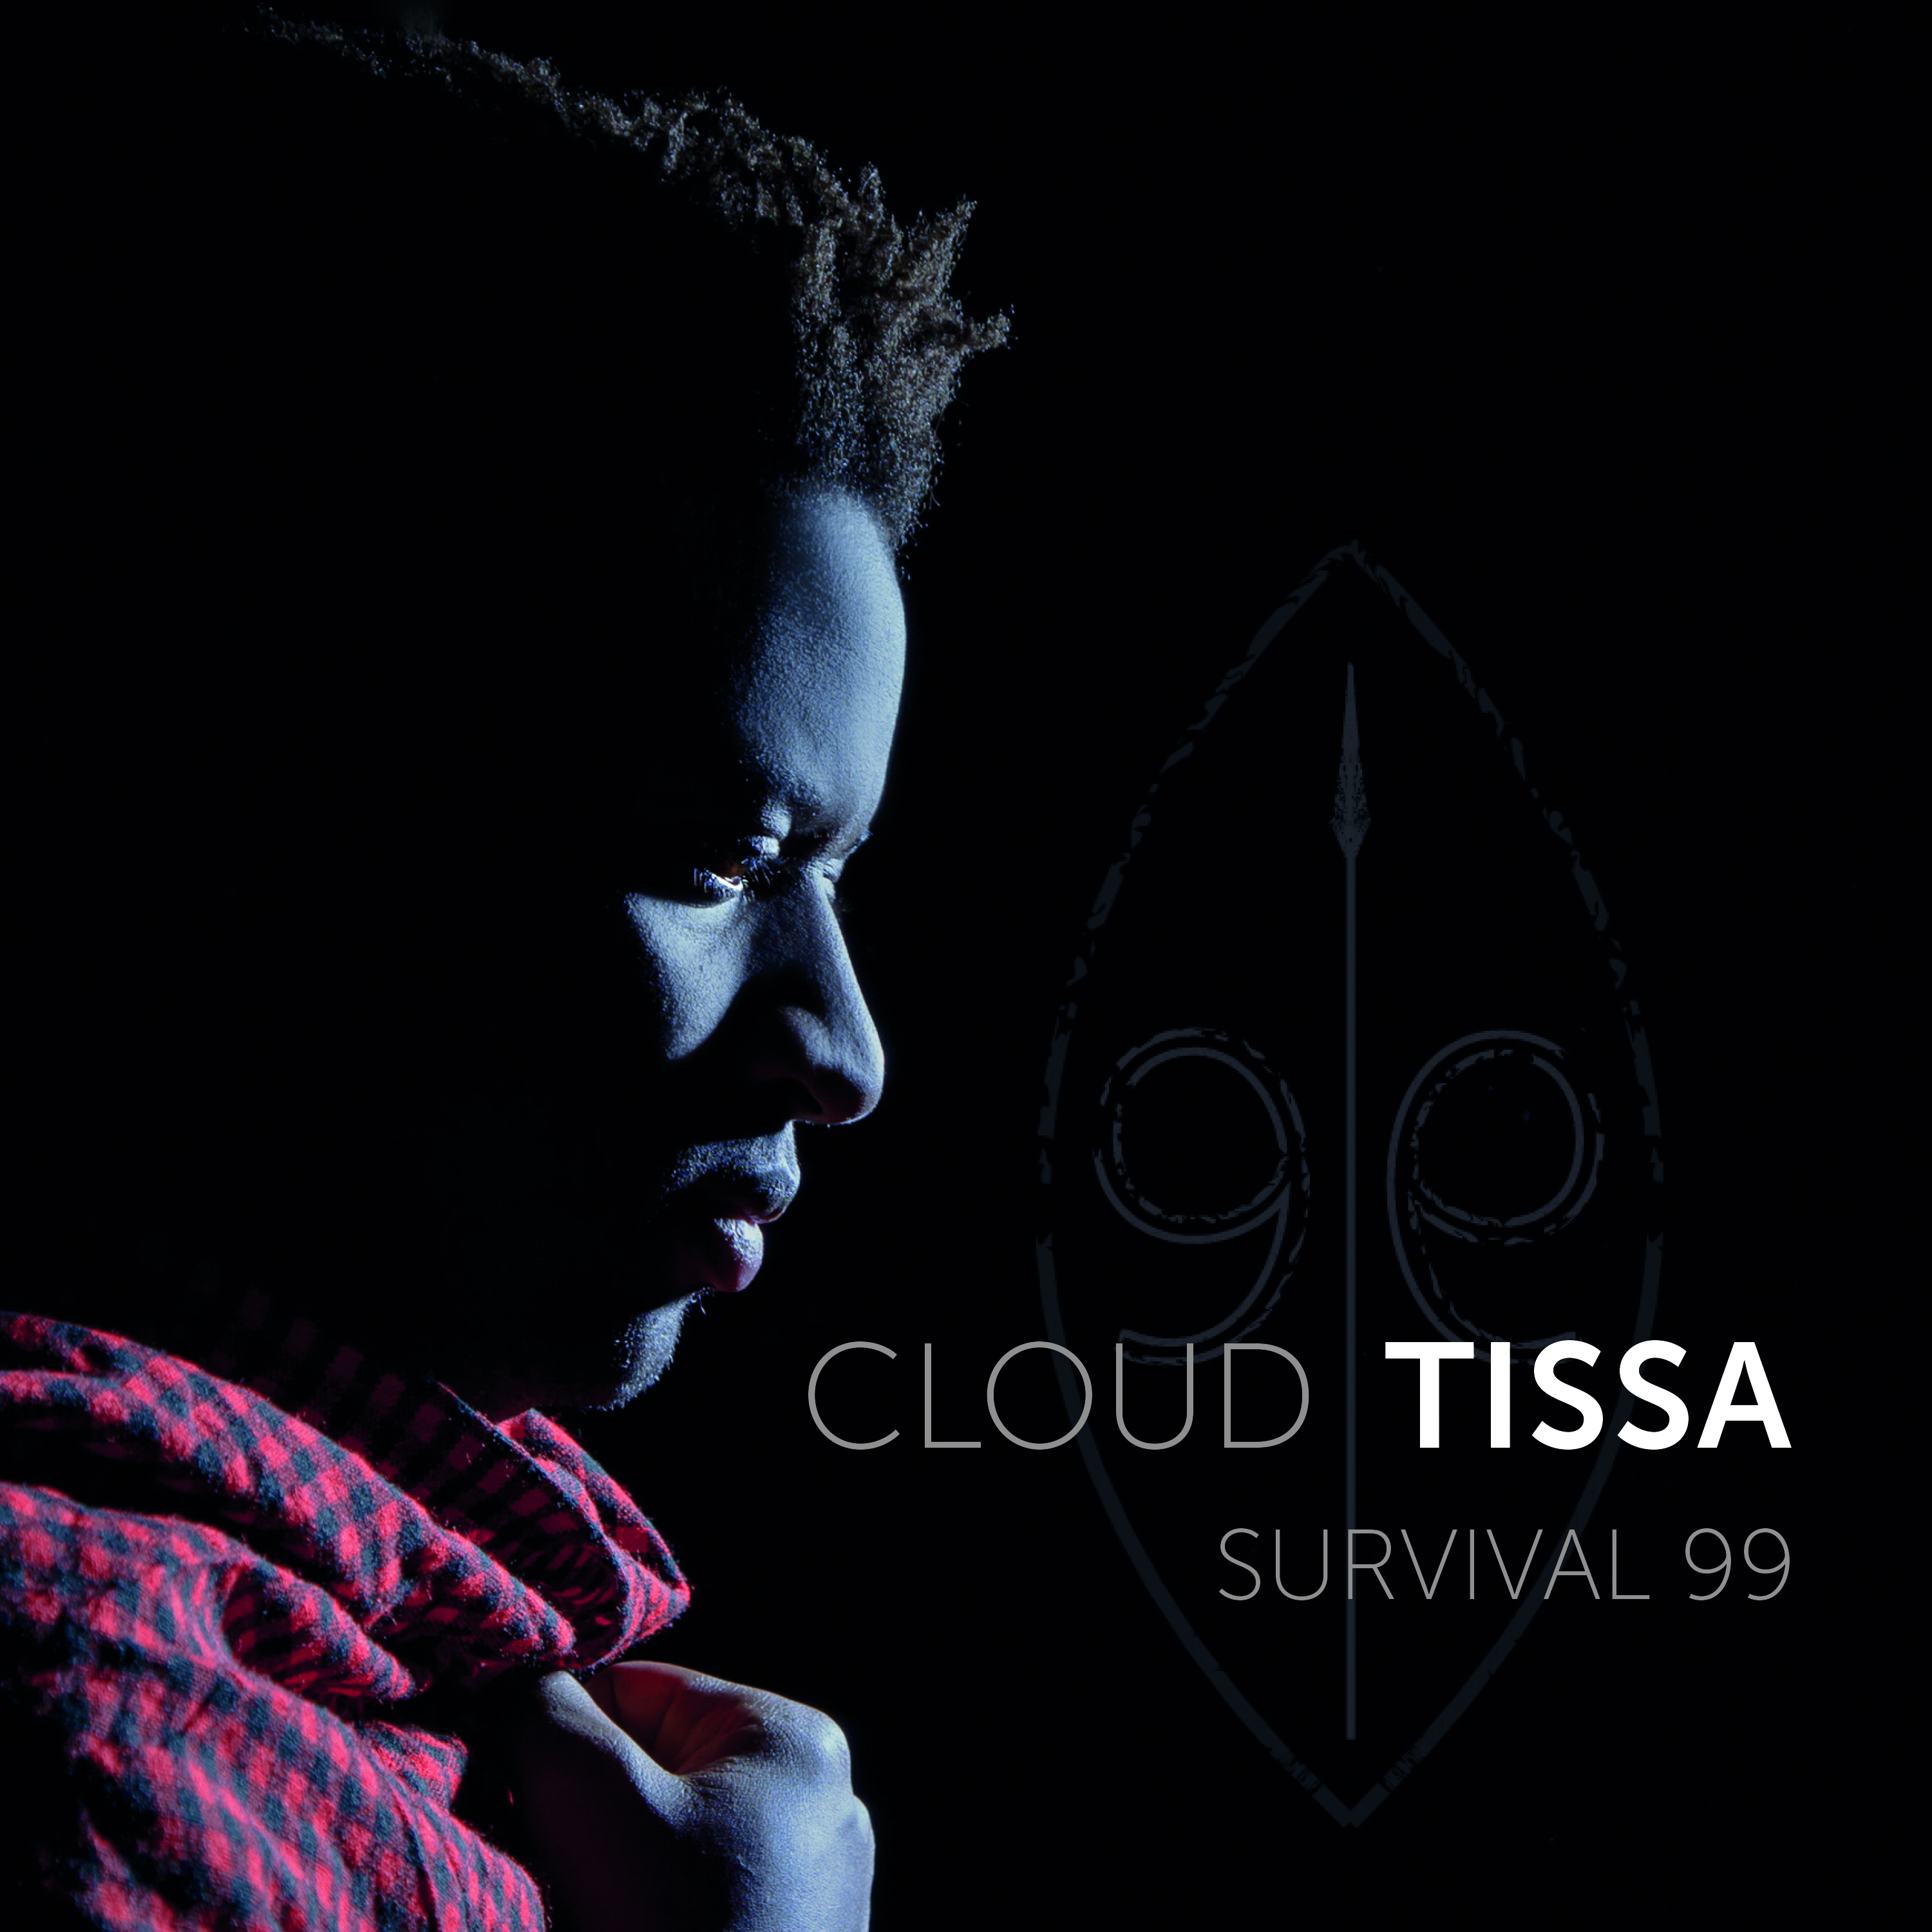 Cloud Tissa - Survival 99